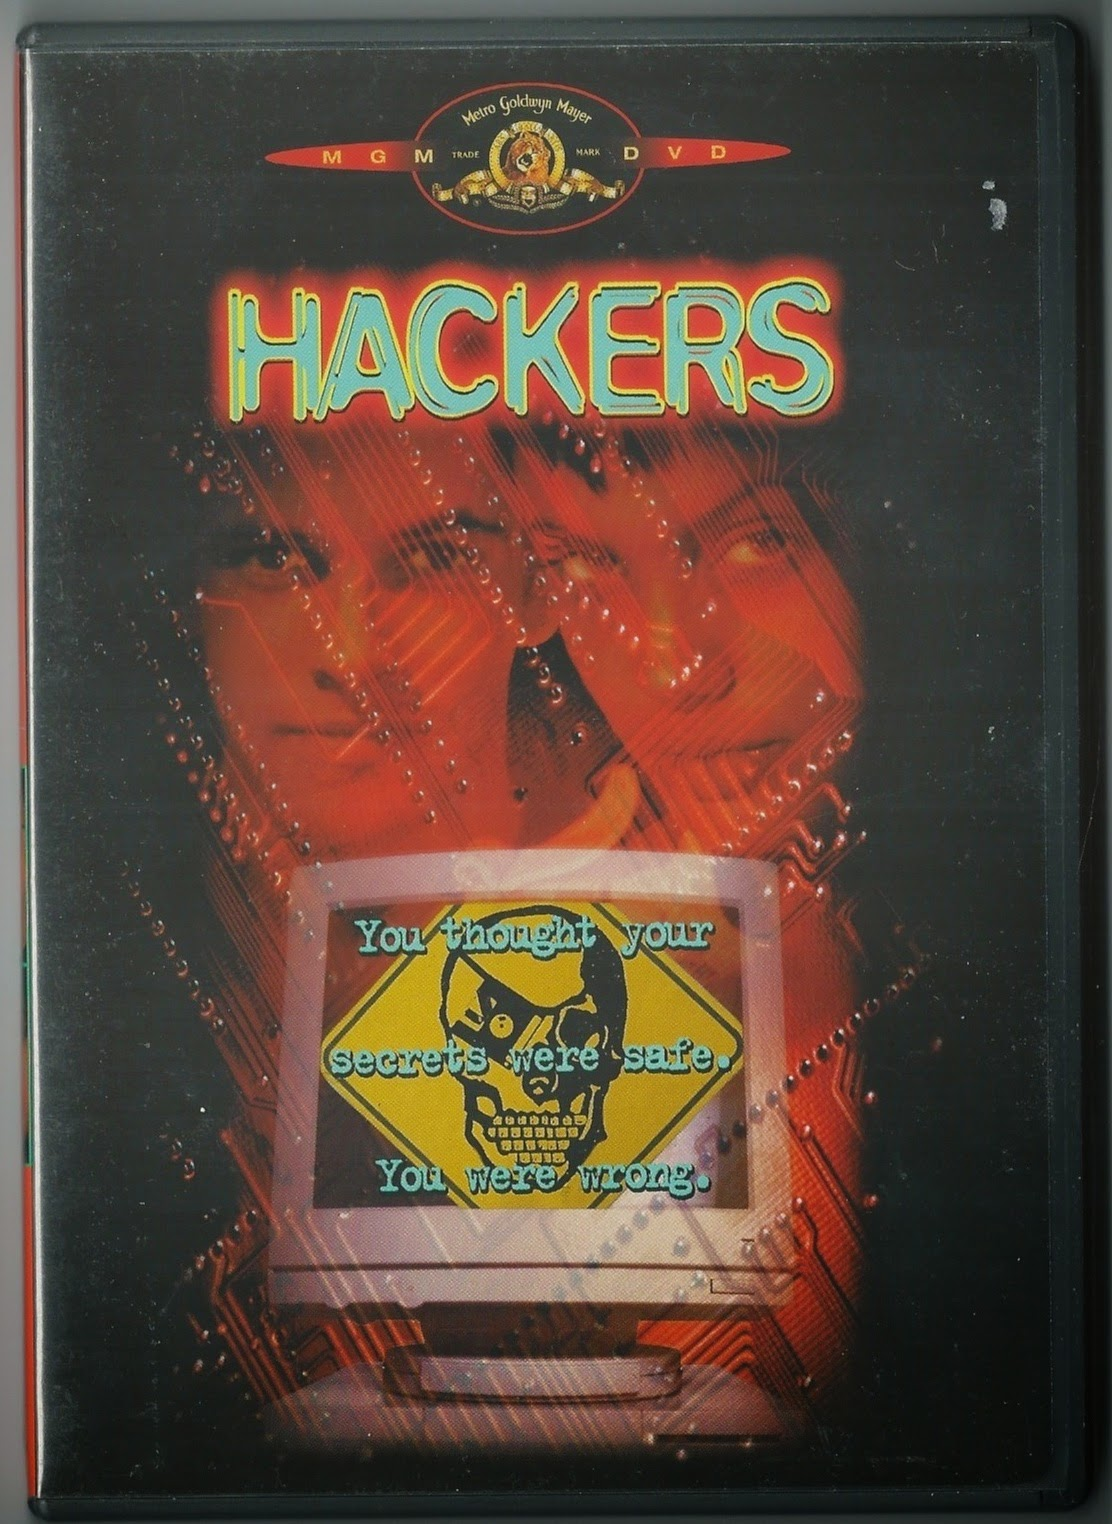 Box cover for DVD movie showing two teenagers above a computer screen with a scull